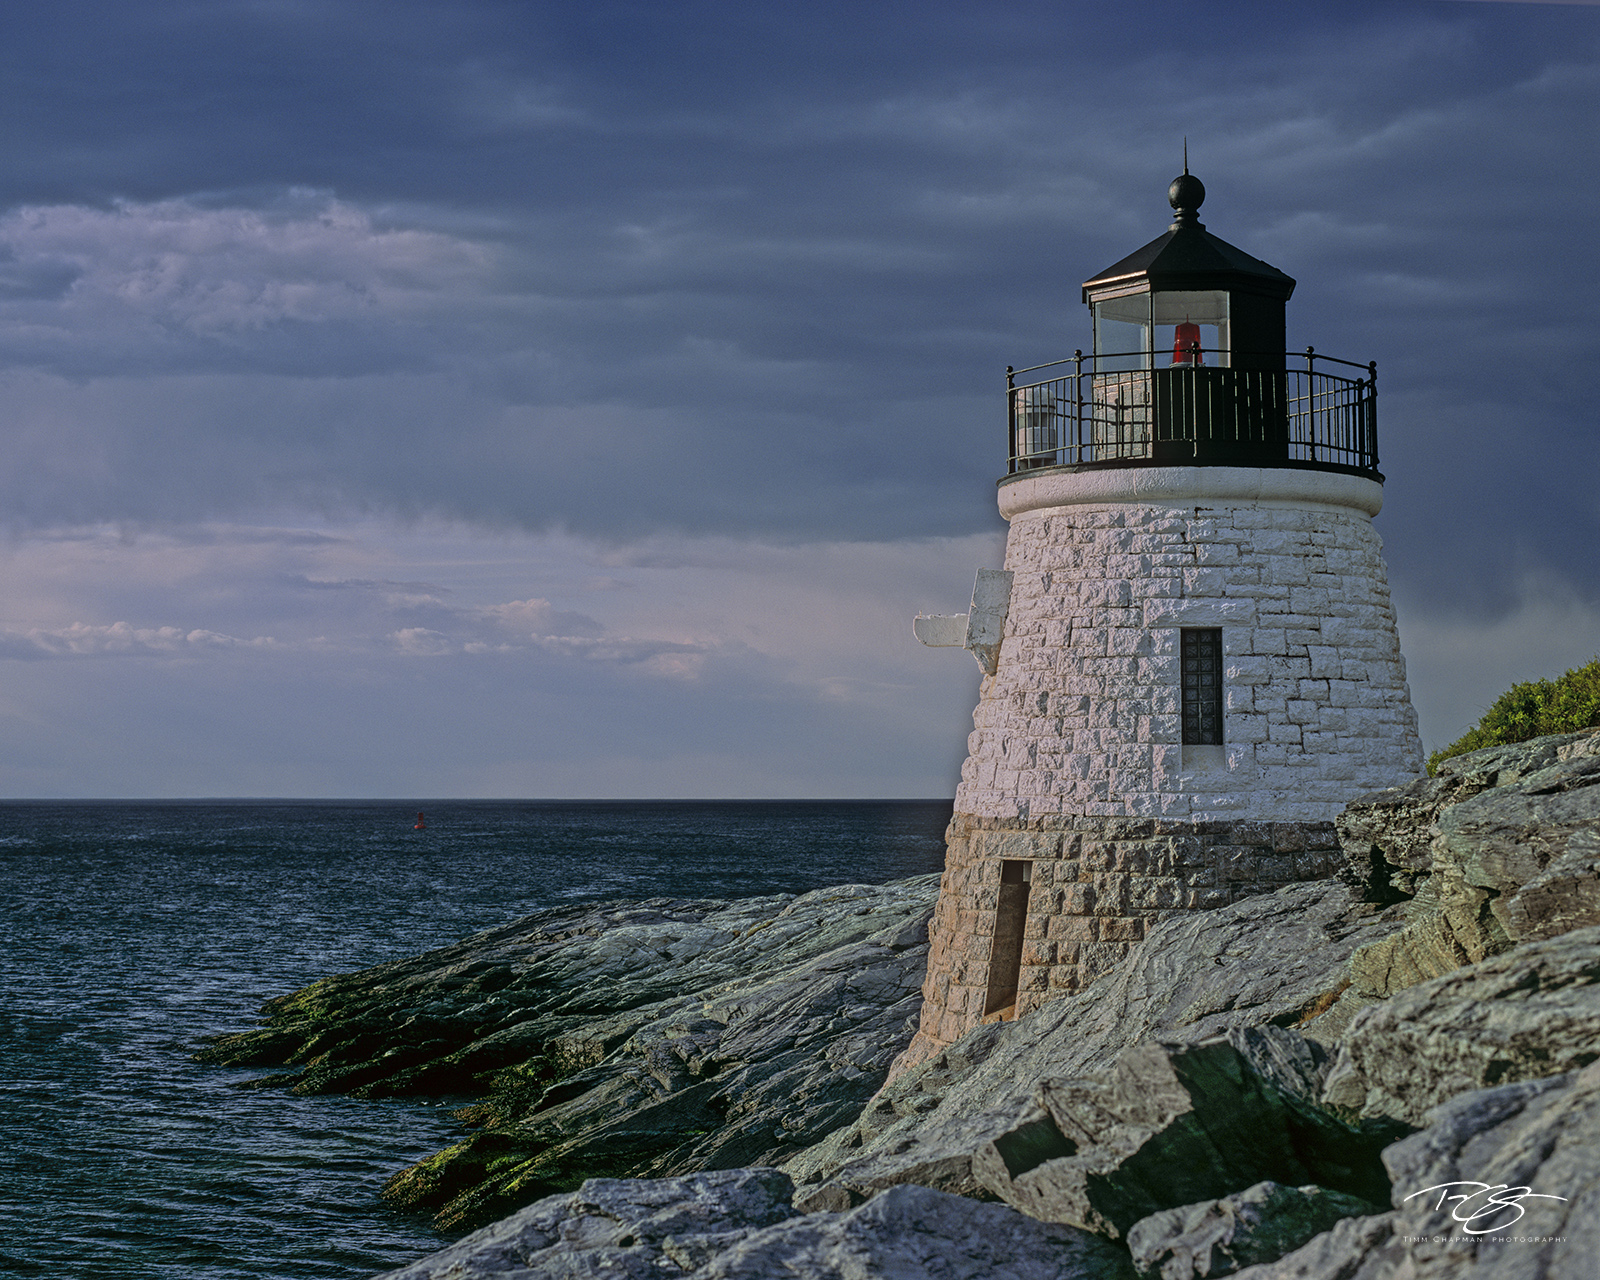 Rhode Island, calm before the storm, beacon, sentry of the sea, protector, guide, Newport, Castle Hill, Lighthouse, Lighthouses, Storm, Sea, Stormy Seas, Rough Water, Beacon, light house, photo